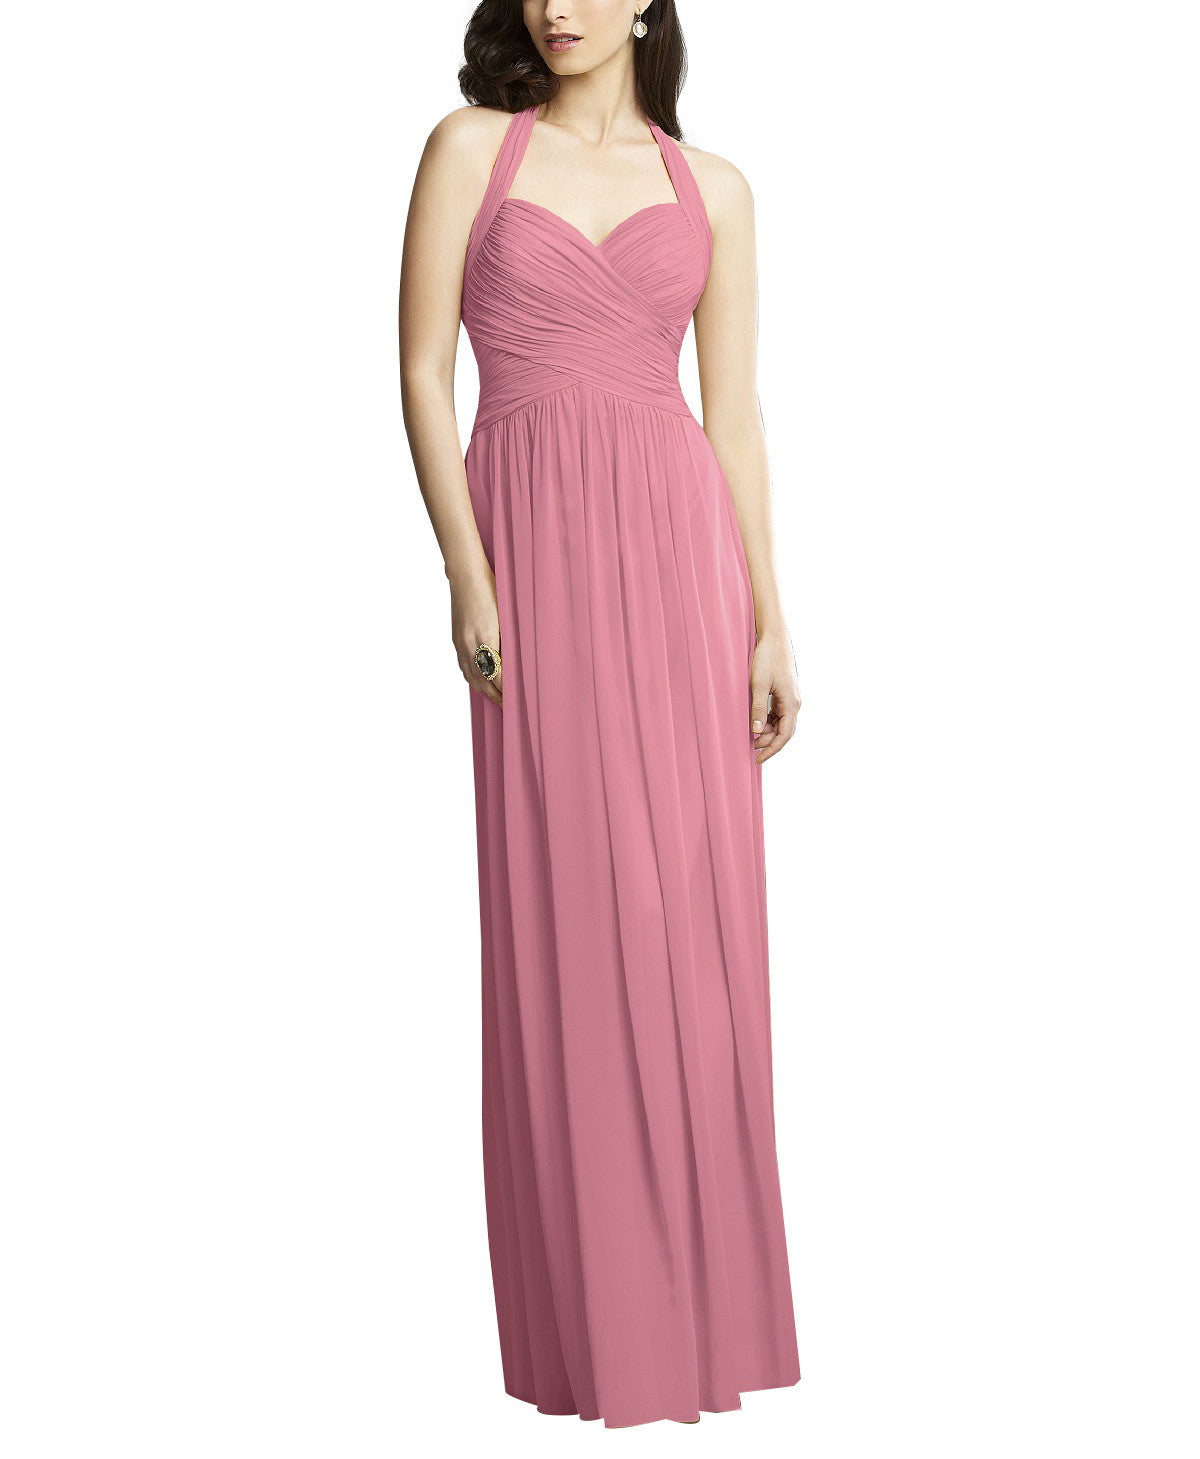 Dessy collection style 2932 bridesmaid dress brideside dessy collection style 2932 ombrellifo Gallery